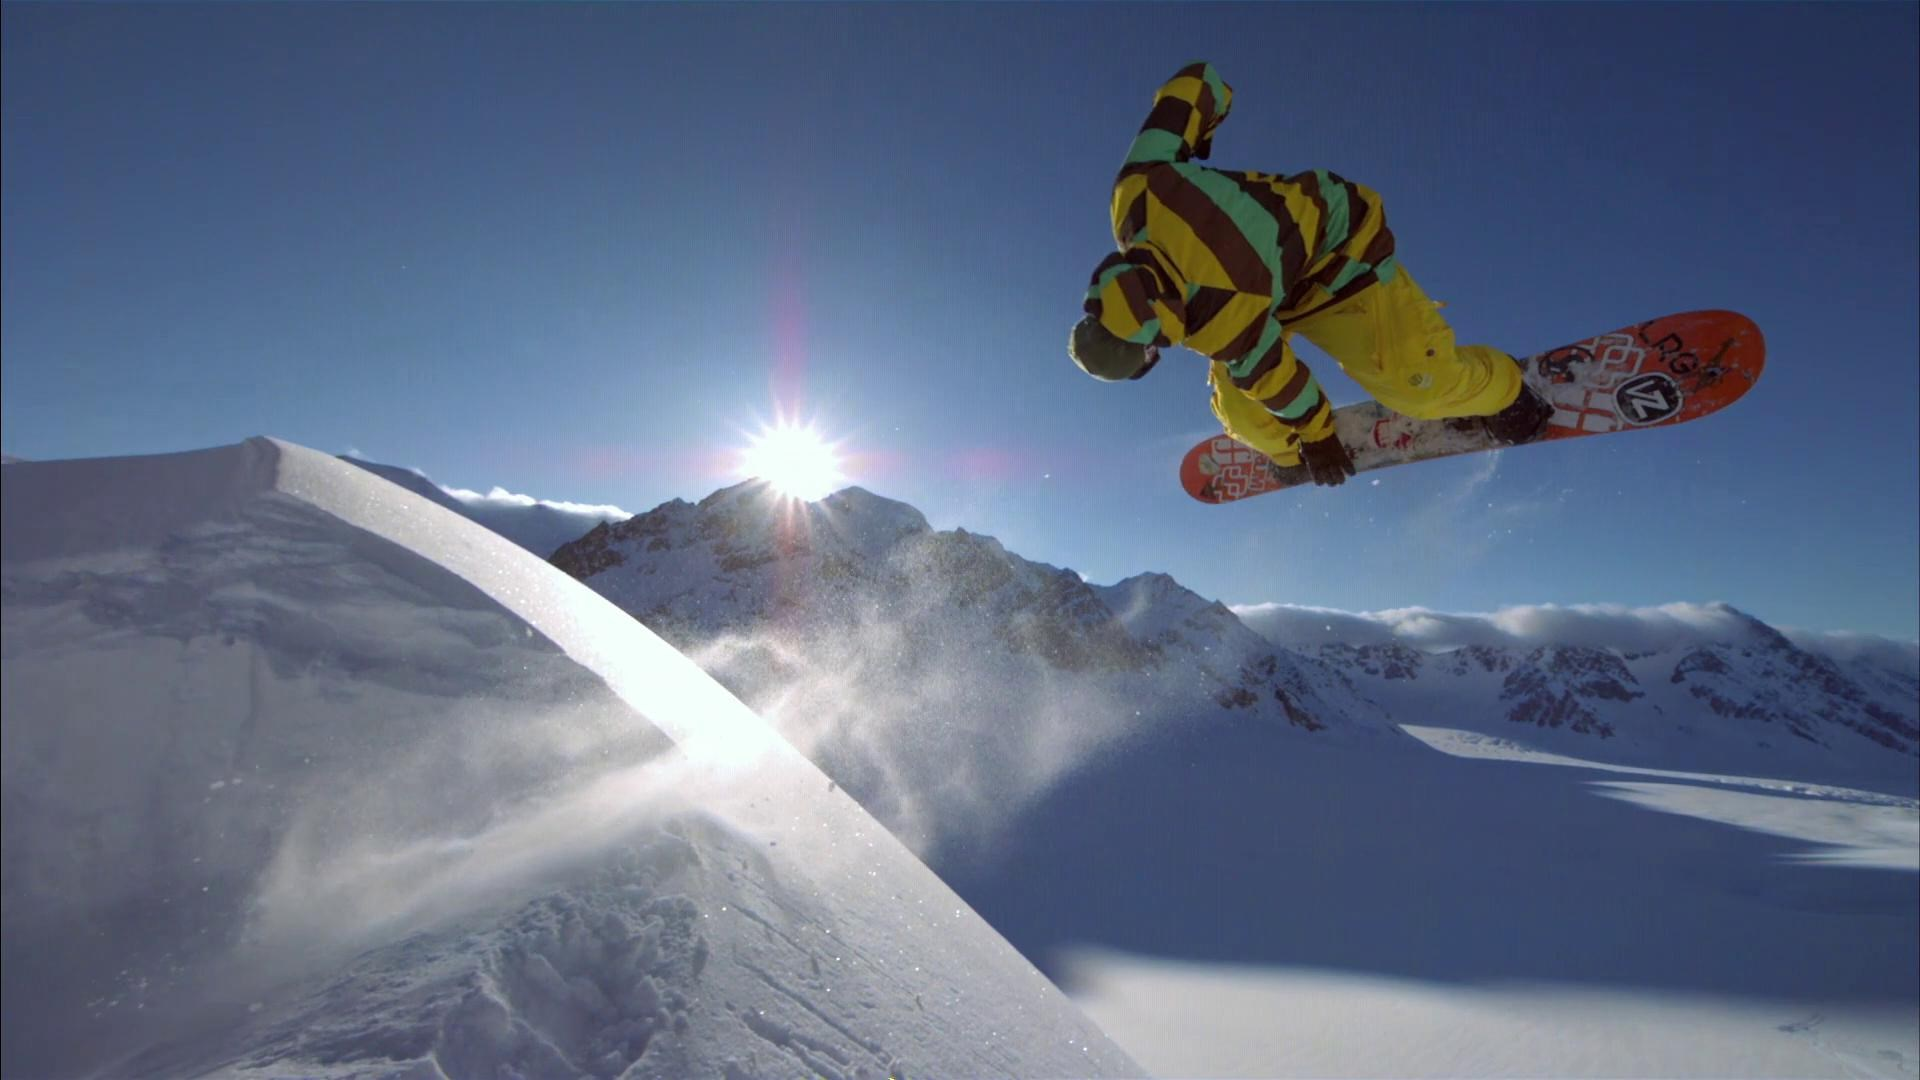 hd-snowboarding-by-Eduardo-Blare-wallpaper-wpc5805797